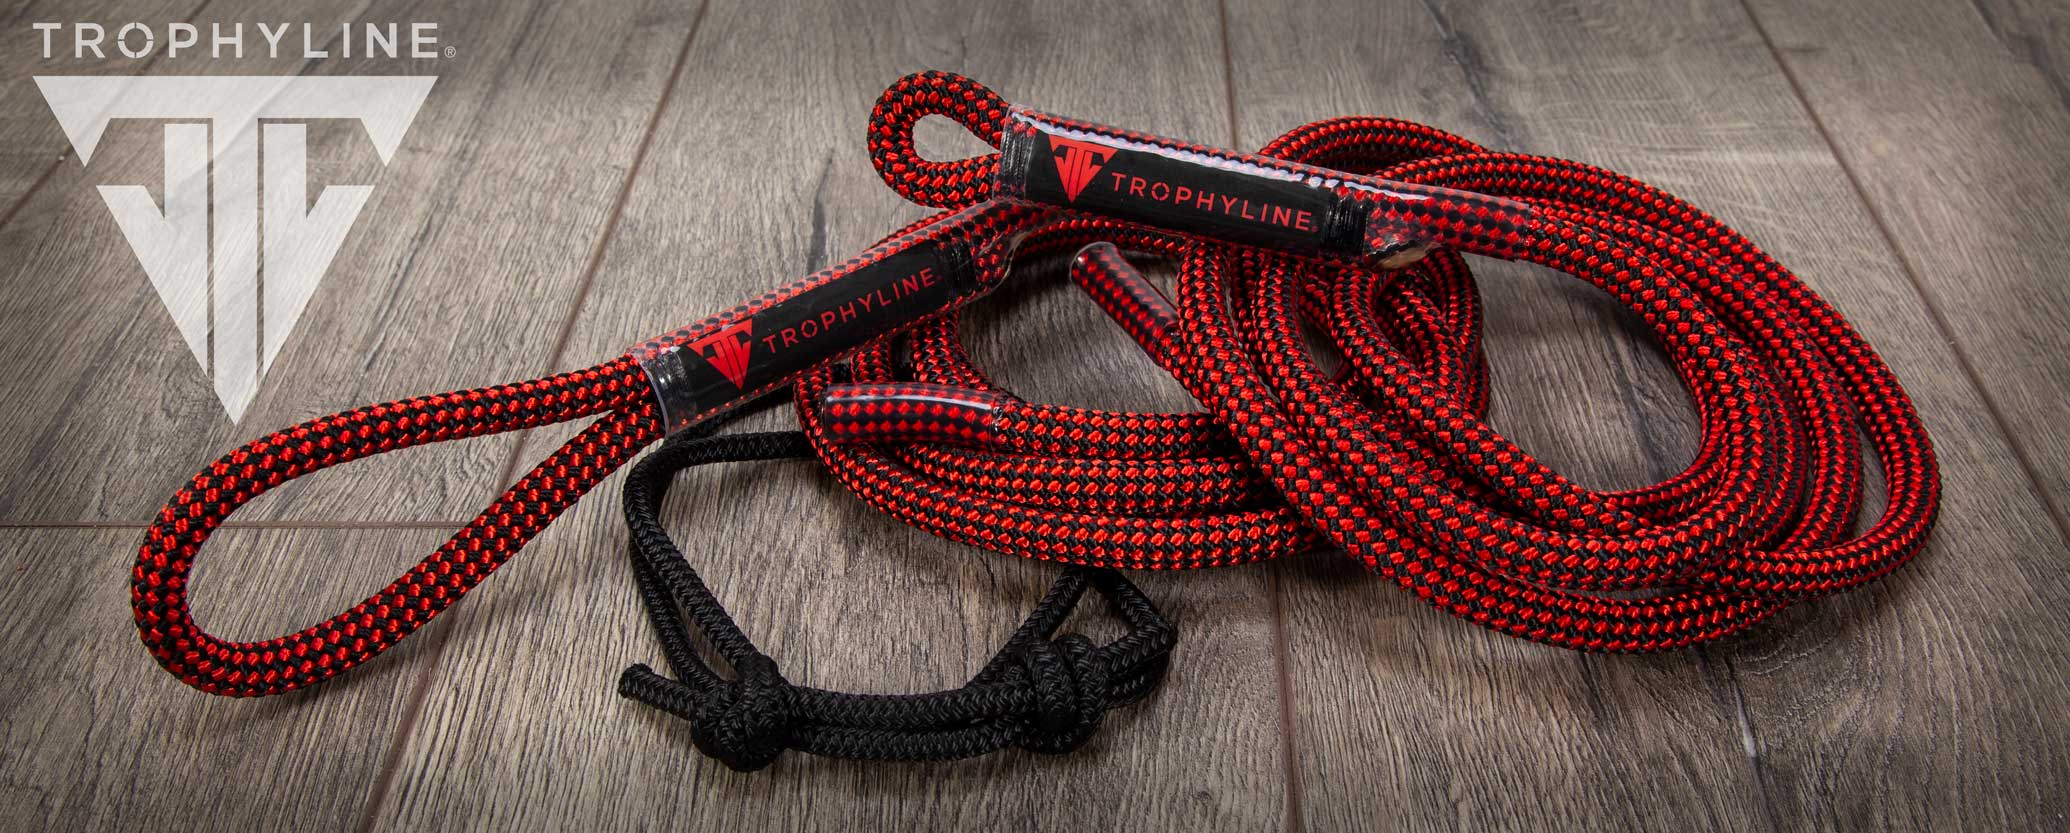 Trophyline Rope Products